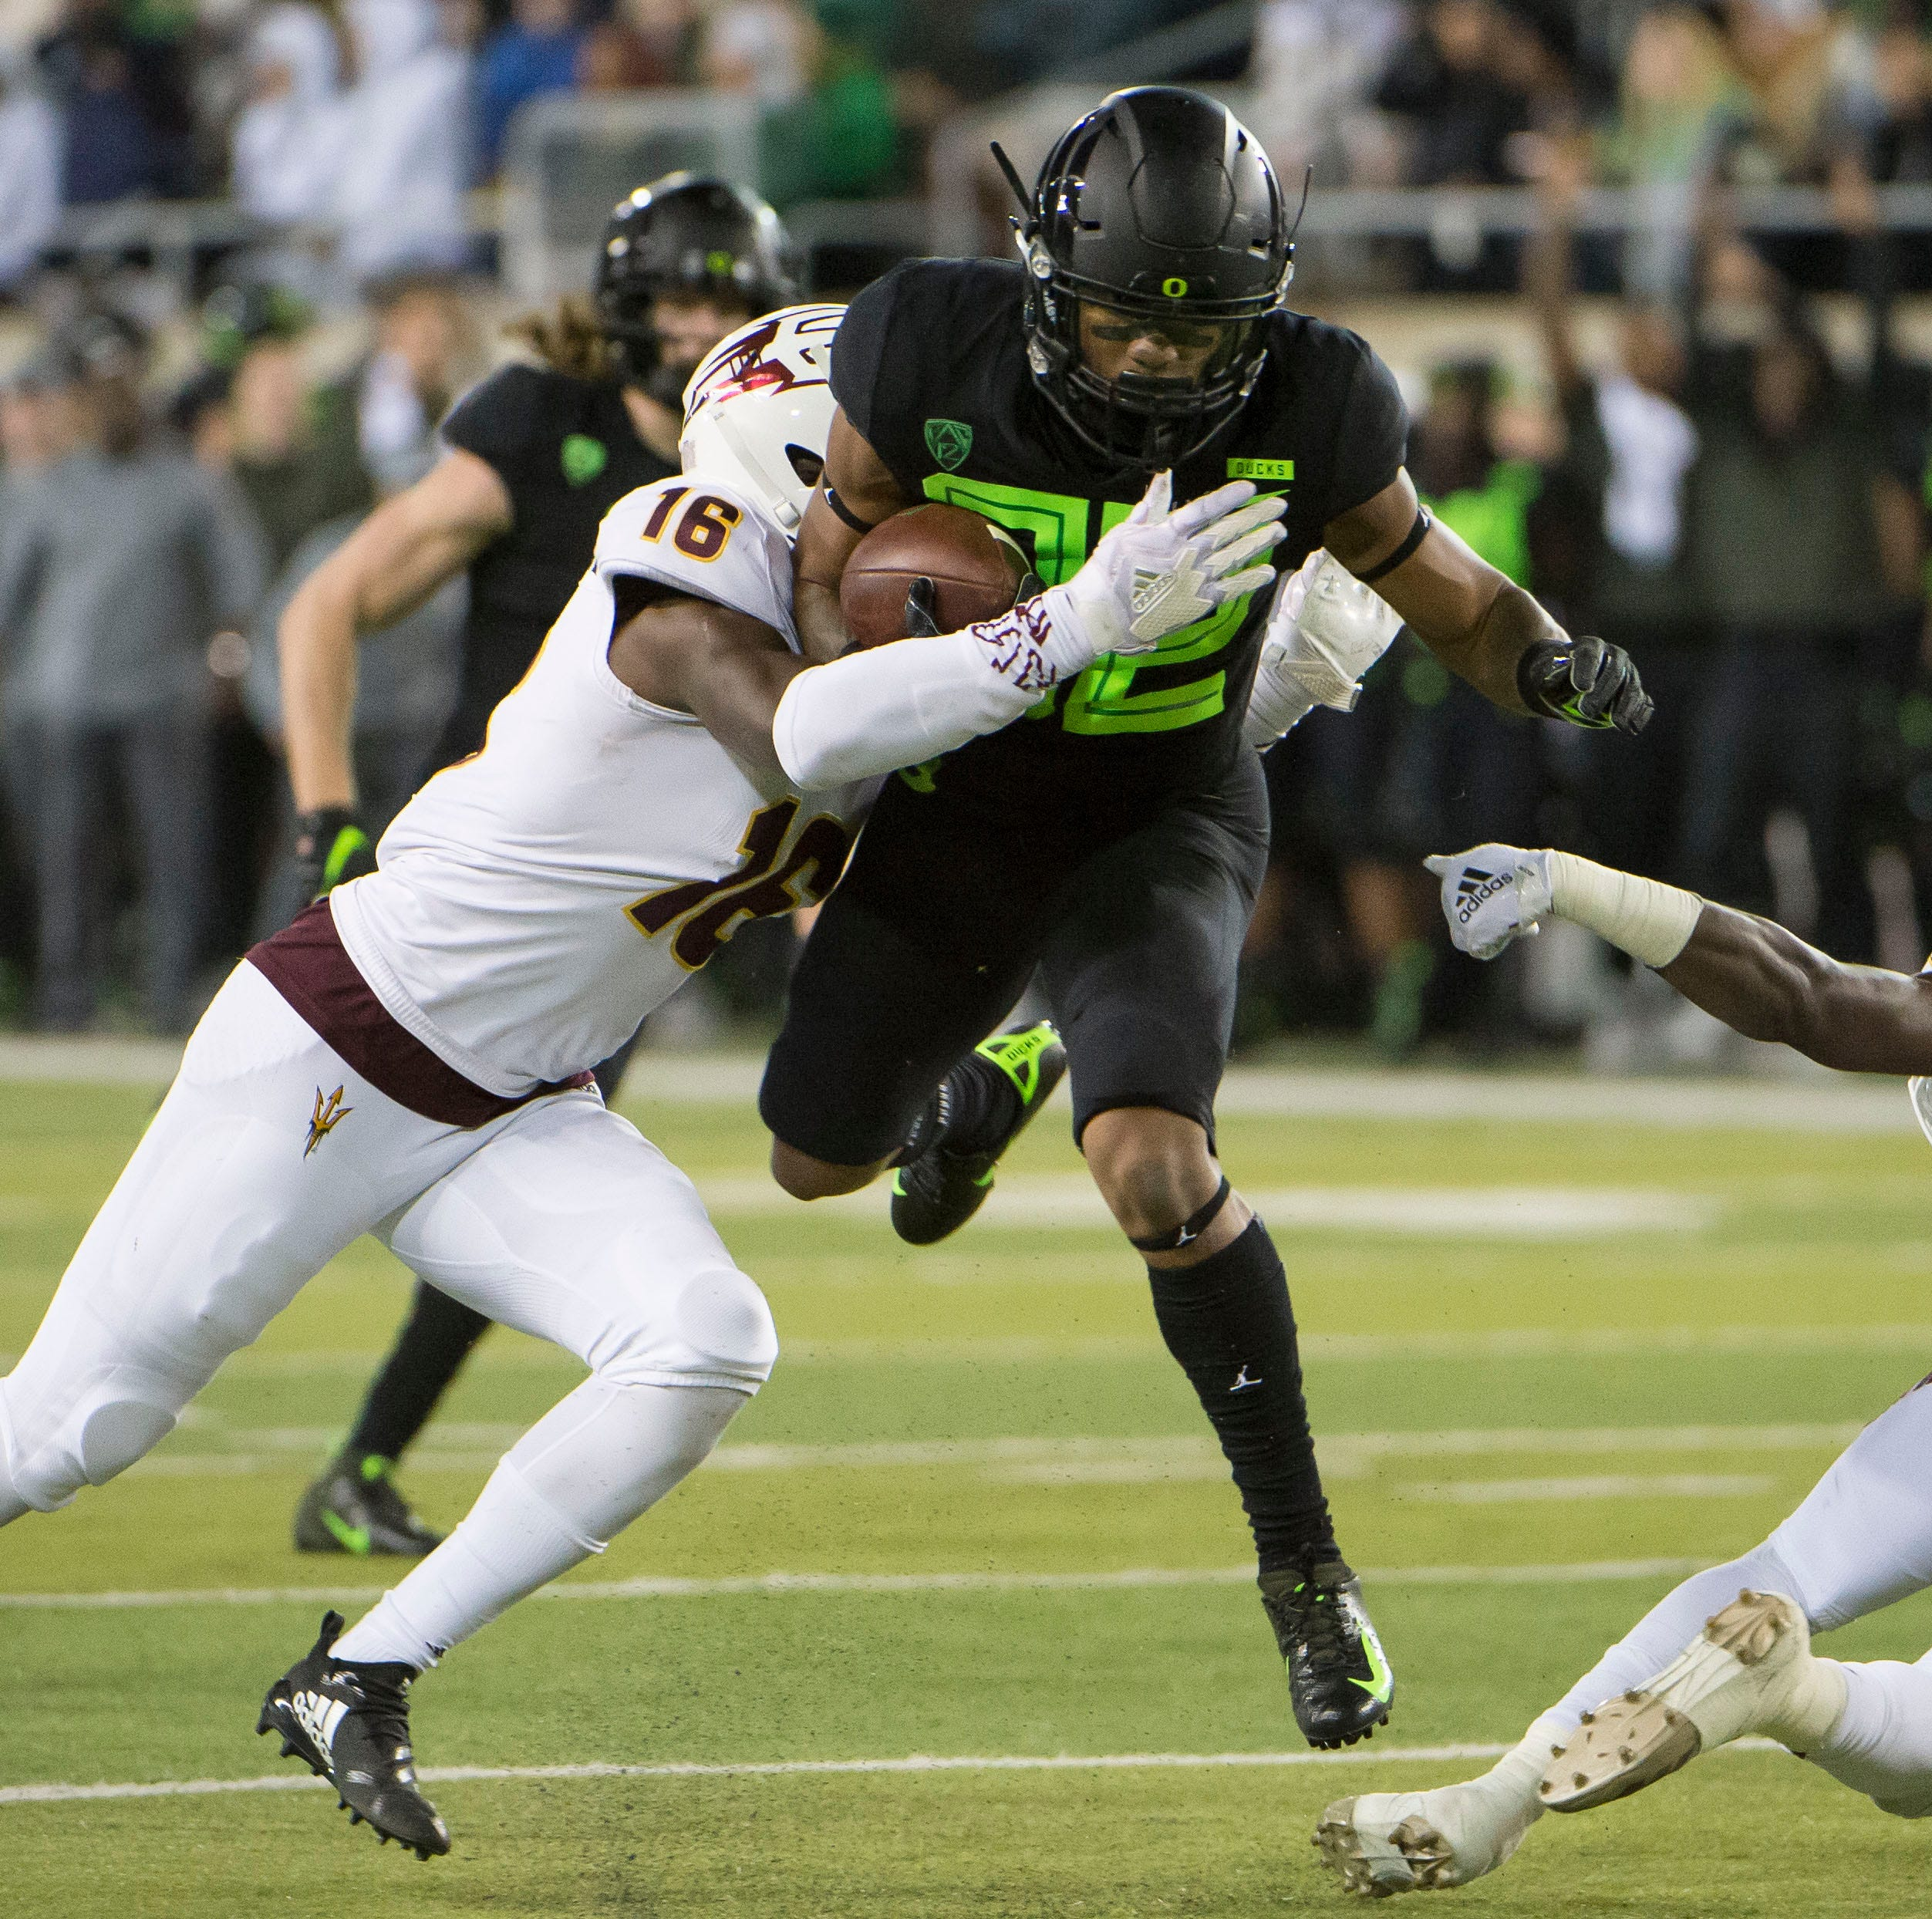 Nov 17, 2018; Eugene, OR, USA; Oregon Ducks wide receiver Justin Collins (82) picks up a first down during the first half  tackled by Arizona State Sun Devils safety Aashari Crosswell (16) at Autzen Stadium. Mandatory Credit: Troy Wayrynen-USA TODAY Sports